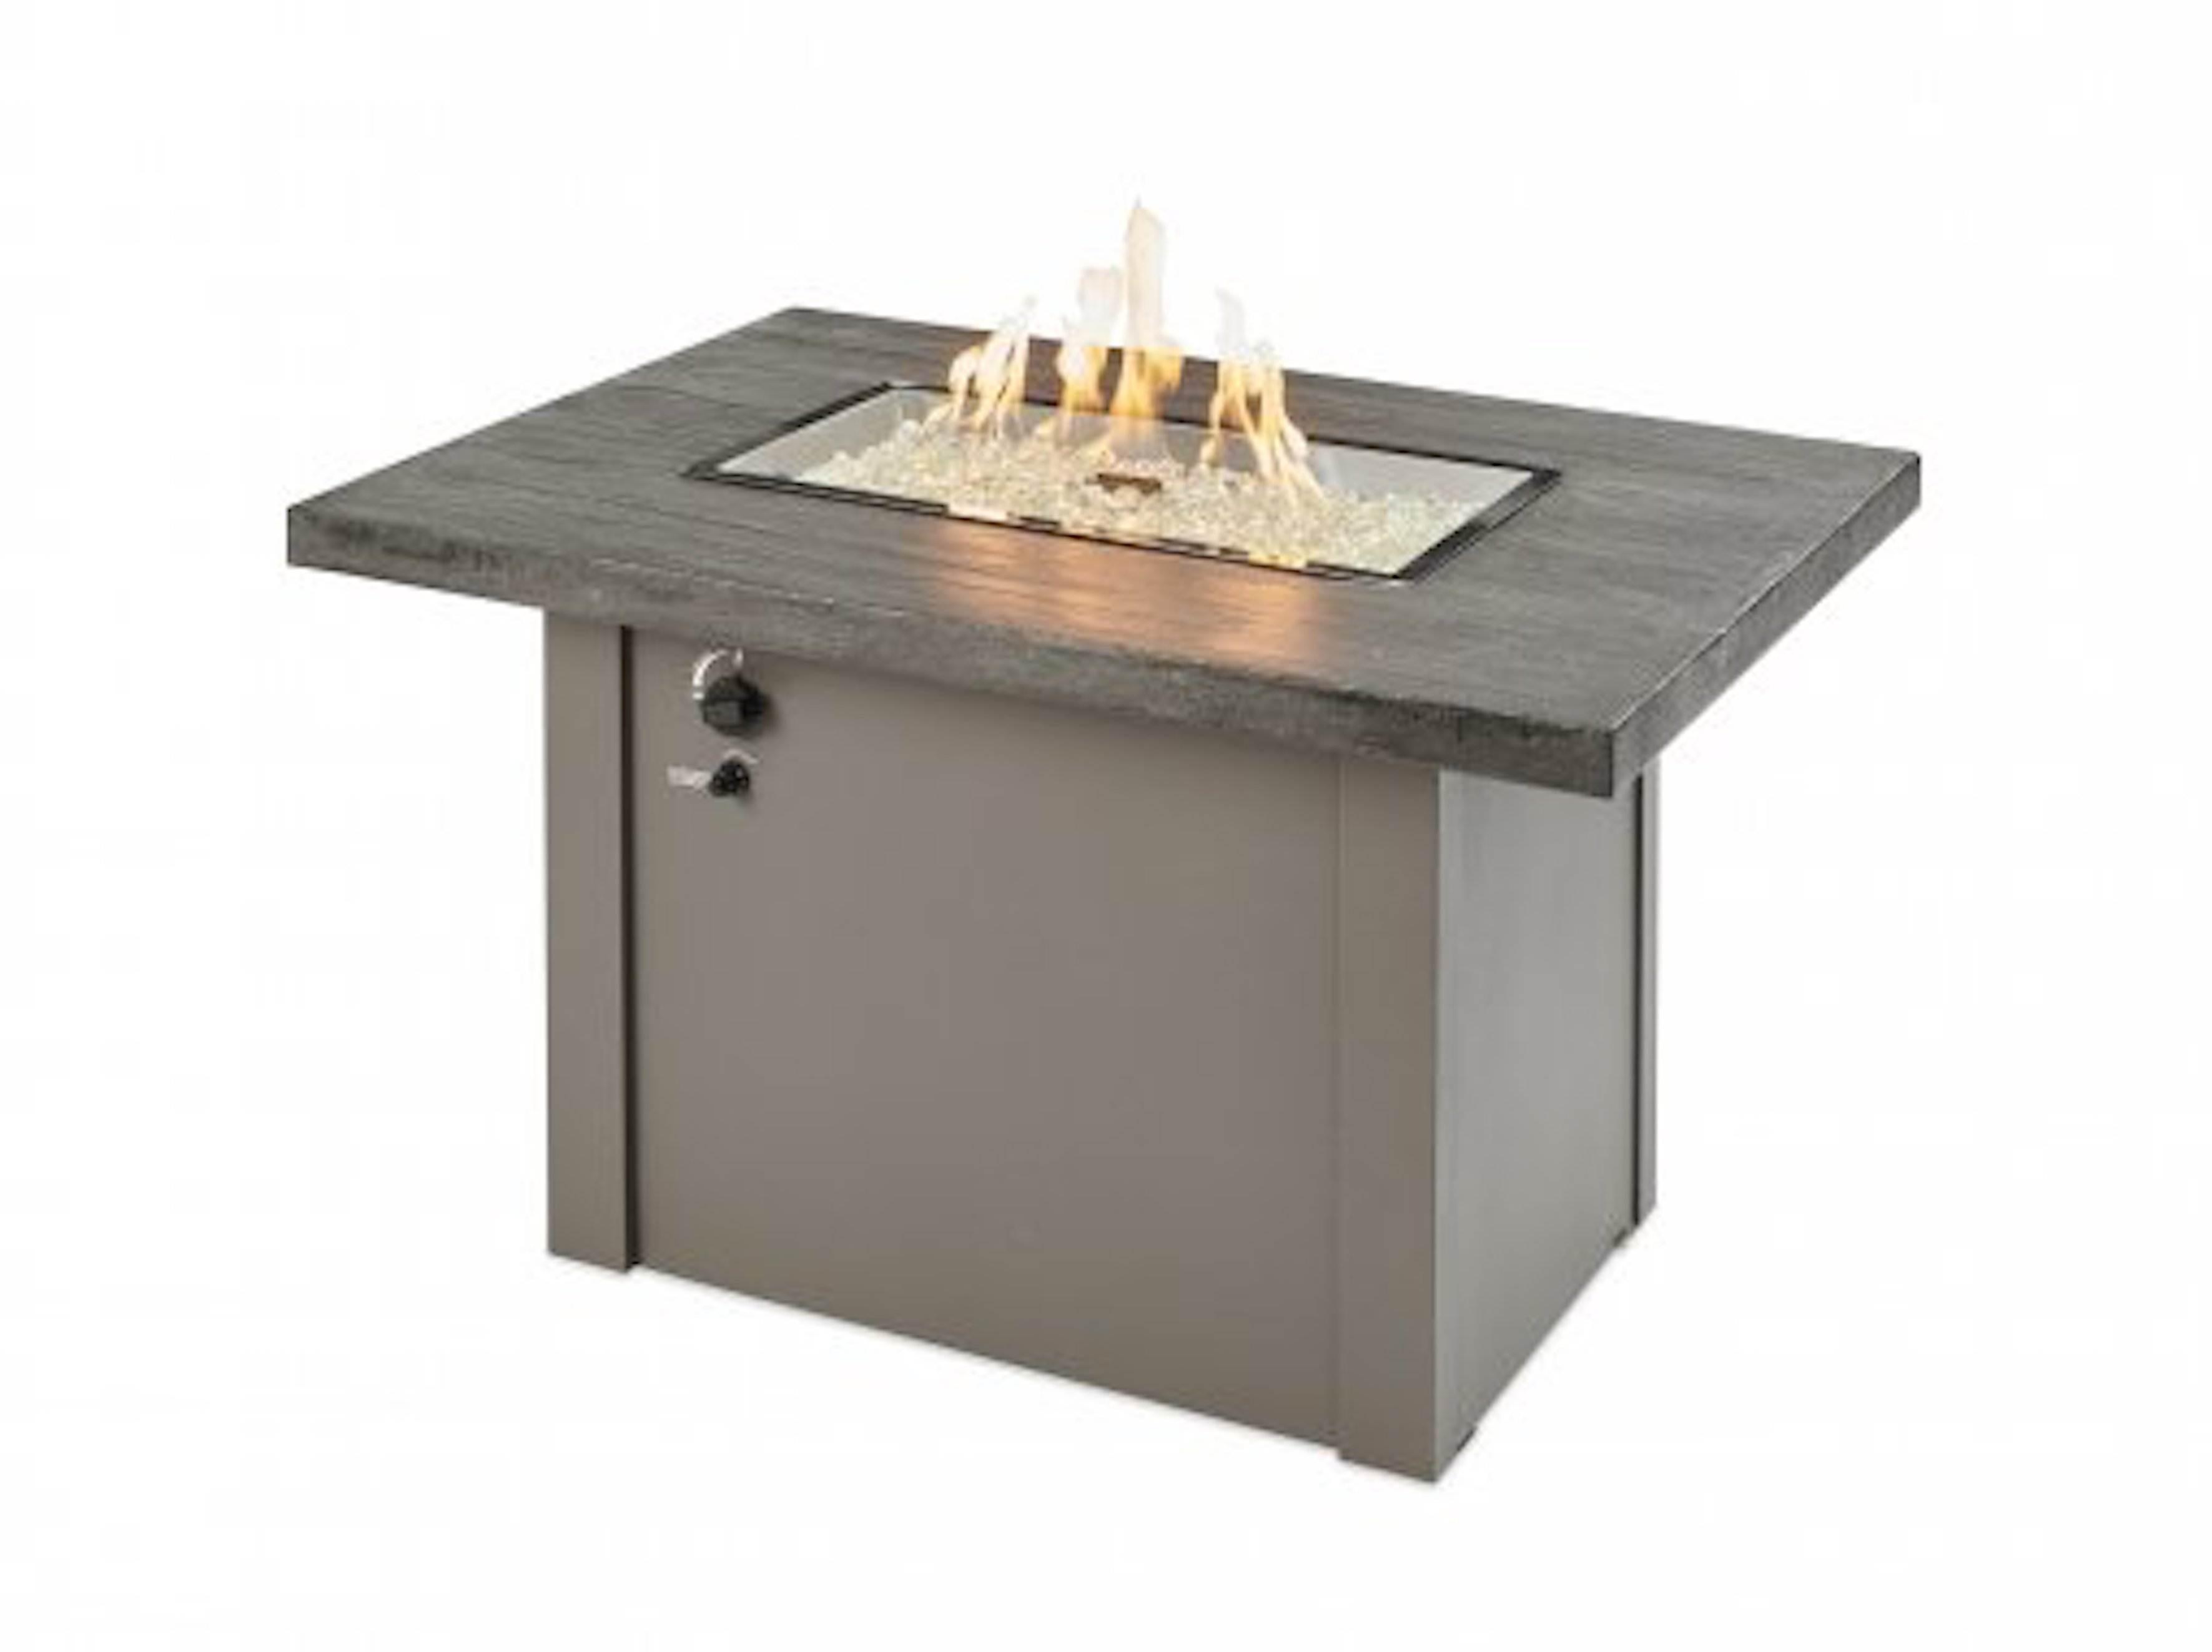 Outdoor Great Room Offers Fire Tables